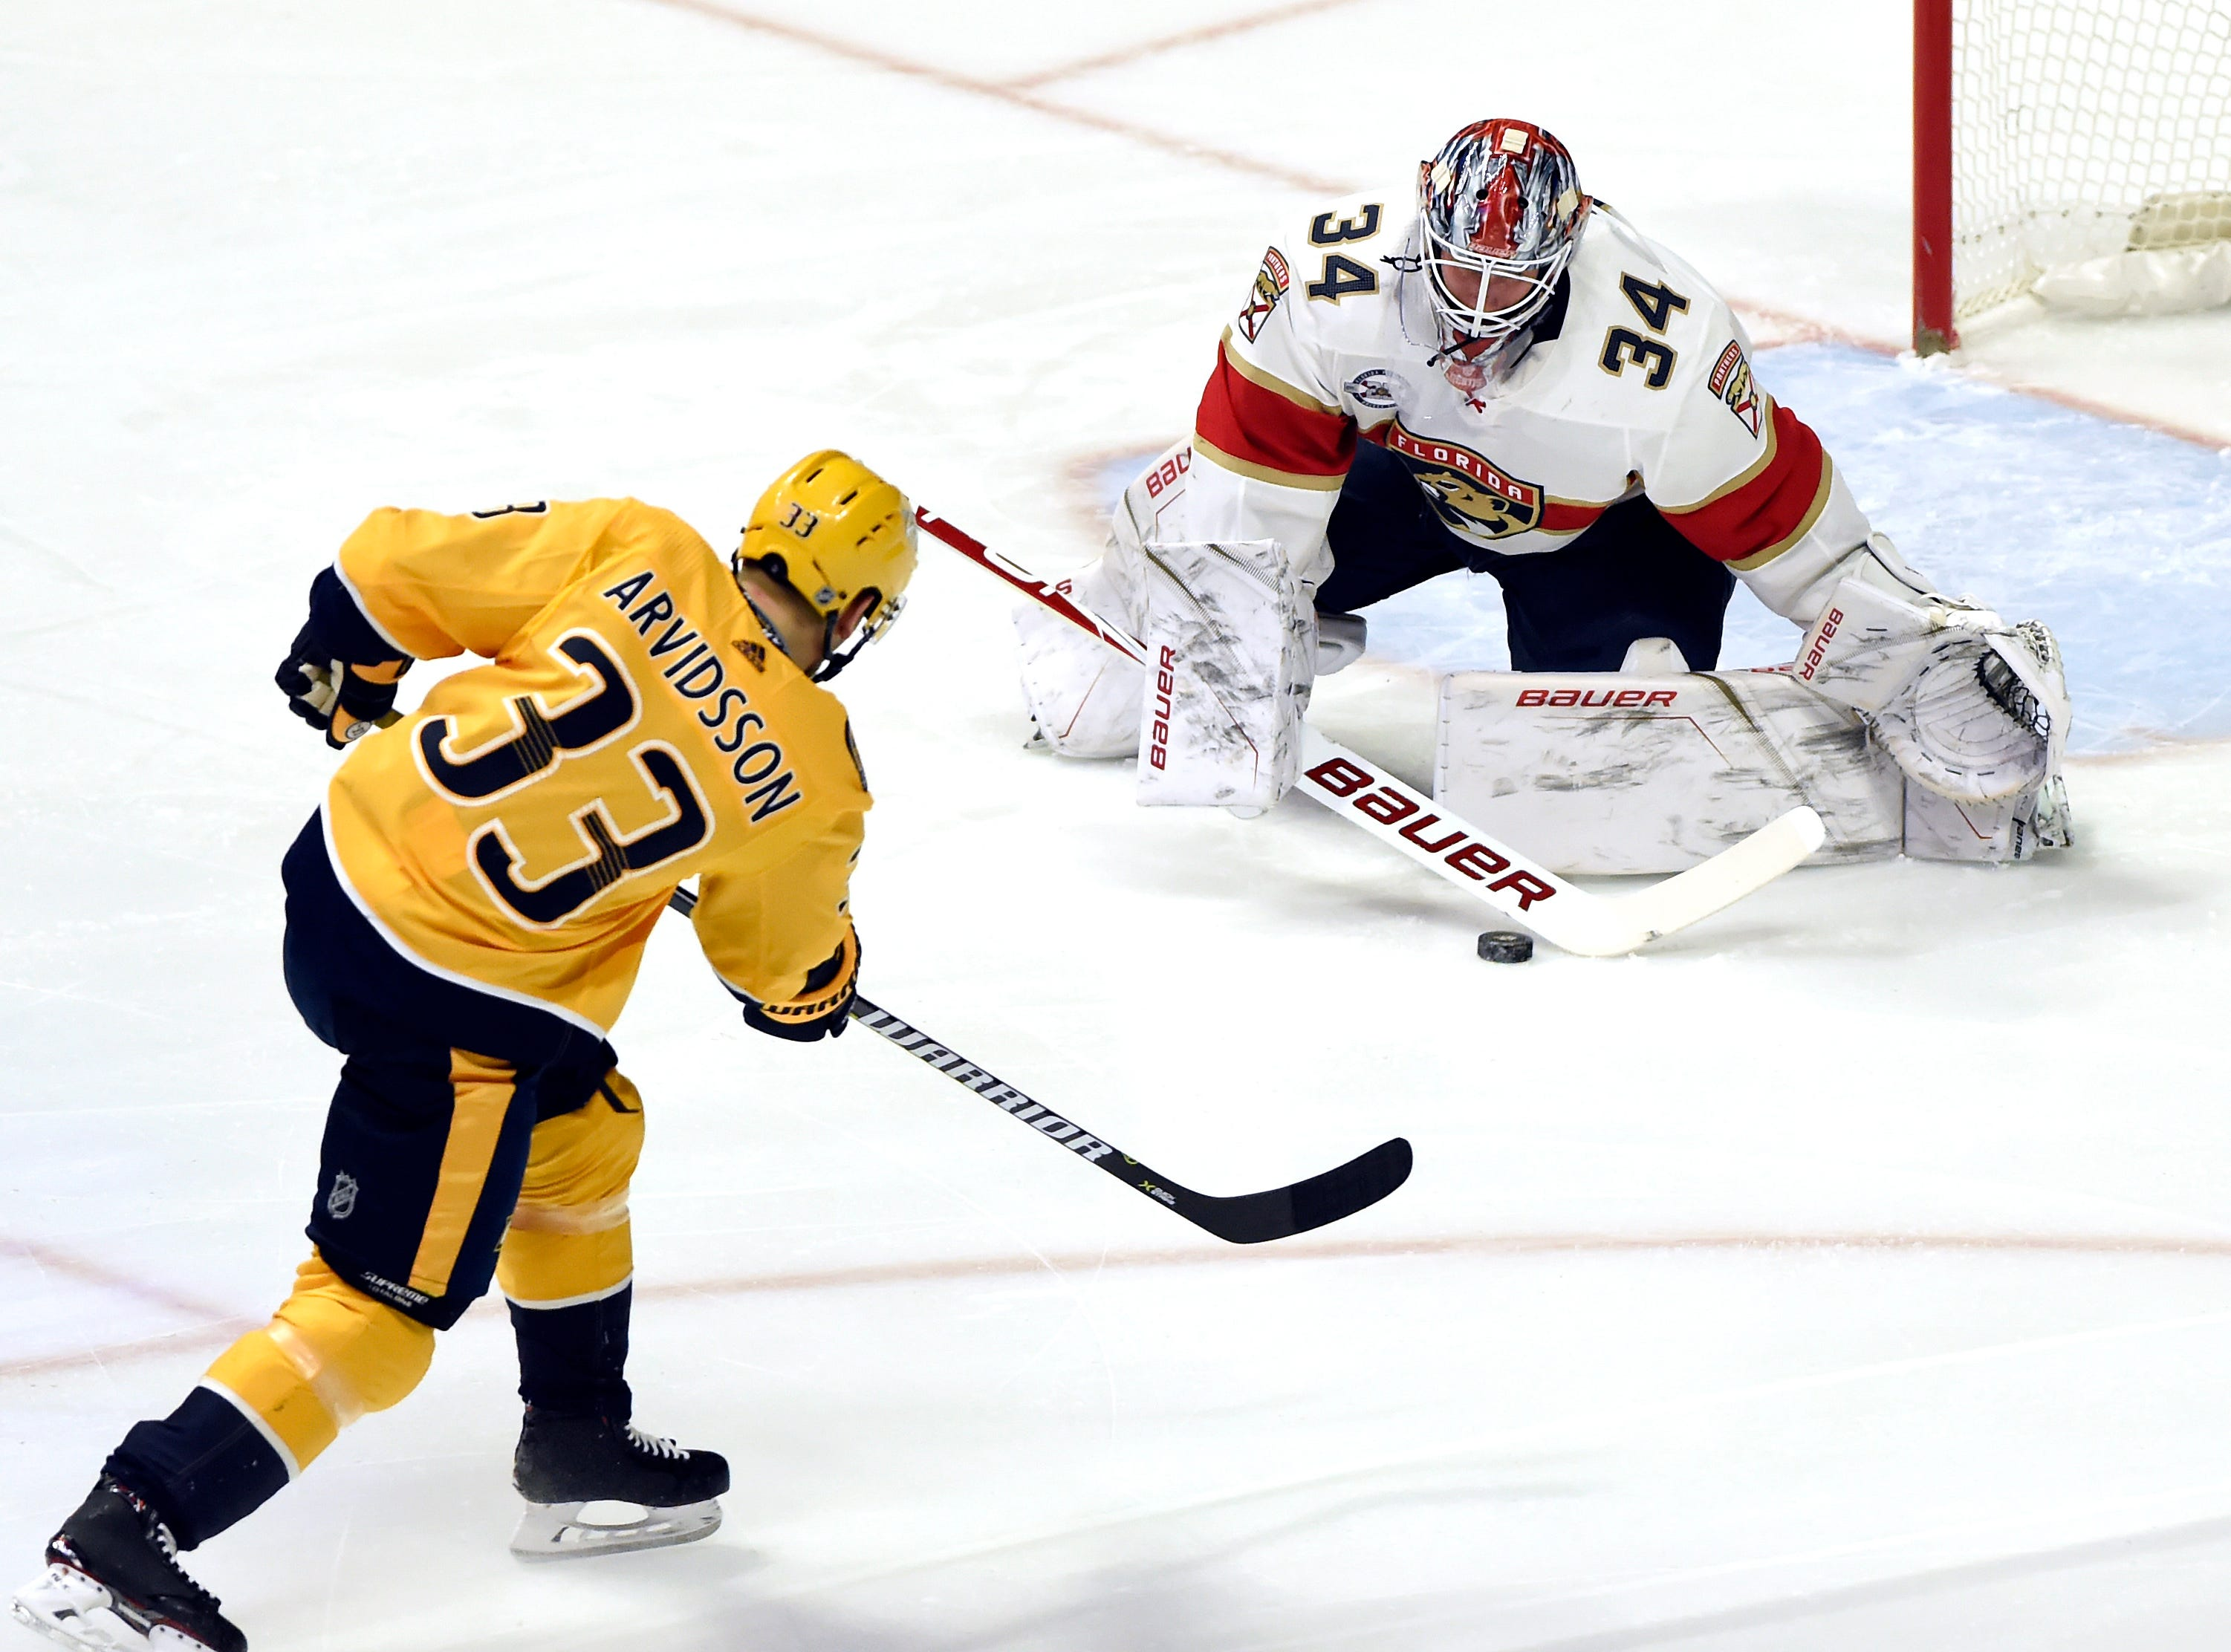 Florida Panthers goaltender James Reimer (34) blocks a shot by Nashville Predators right wing Viktor Arvidsson (33) during the first period of an NHL hockey game Saturday, Jan. 19, 2019, in Nashville, Tenn.